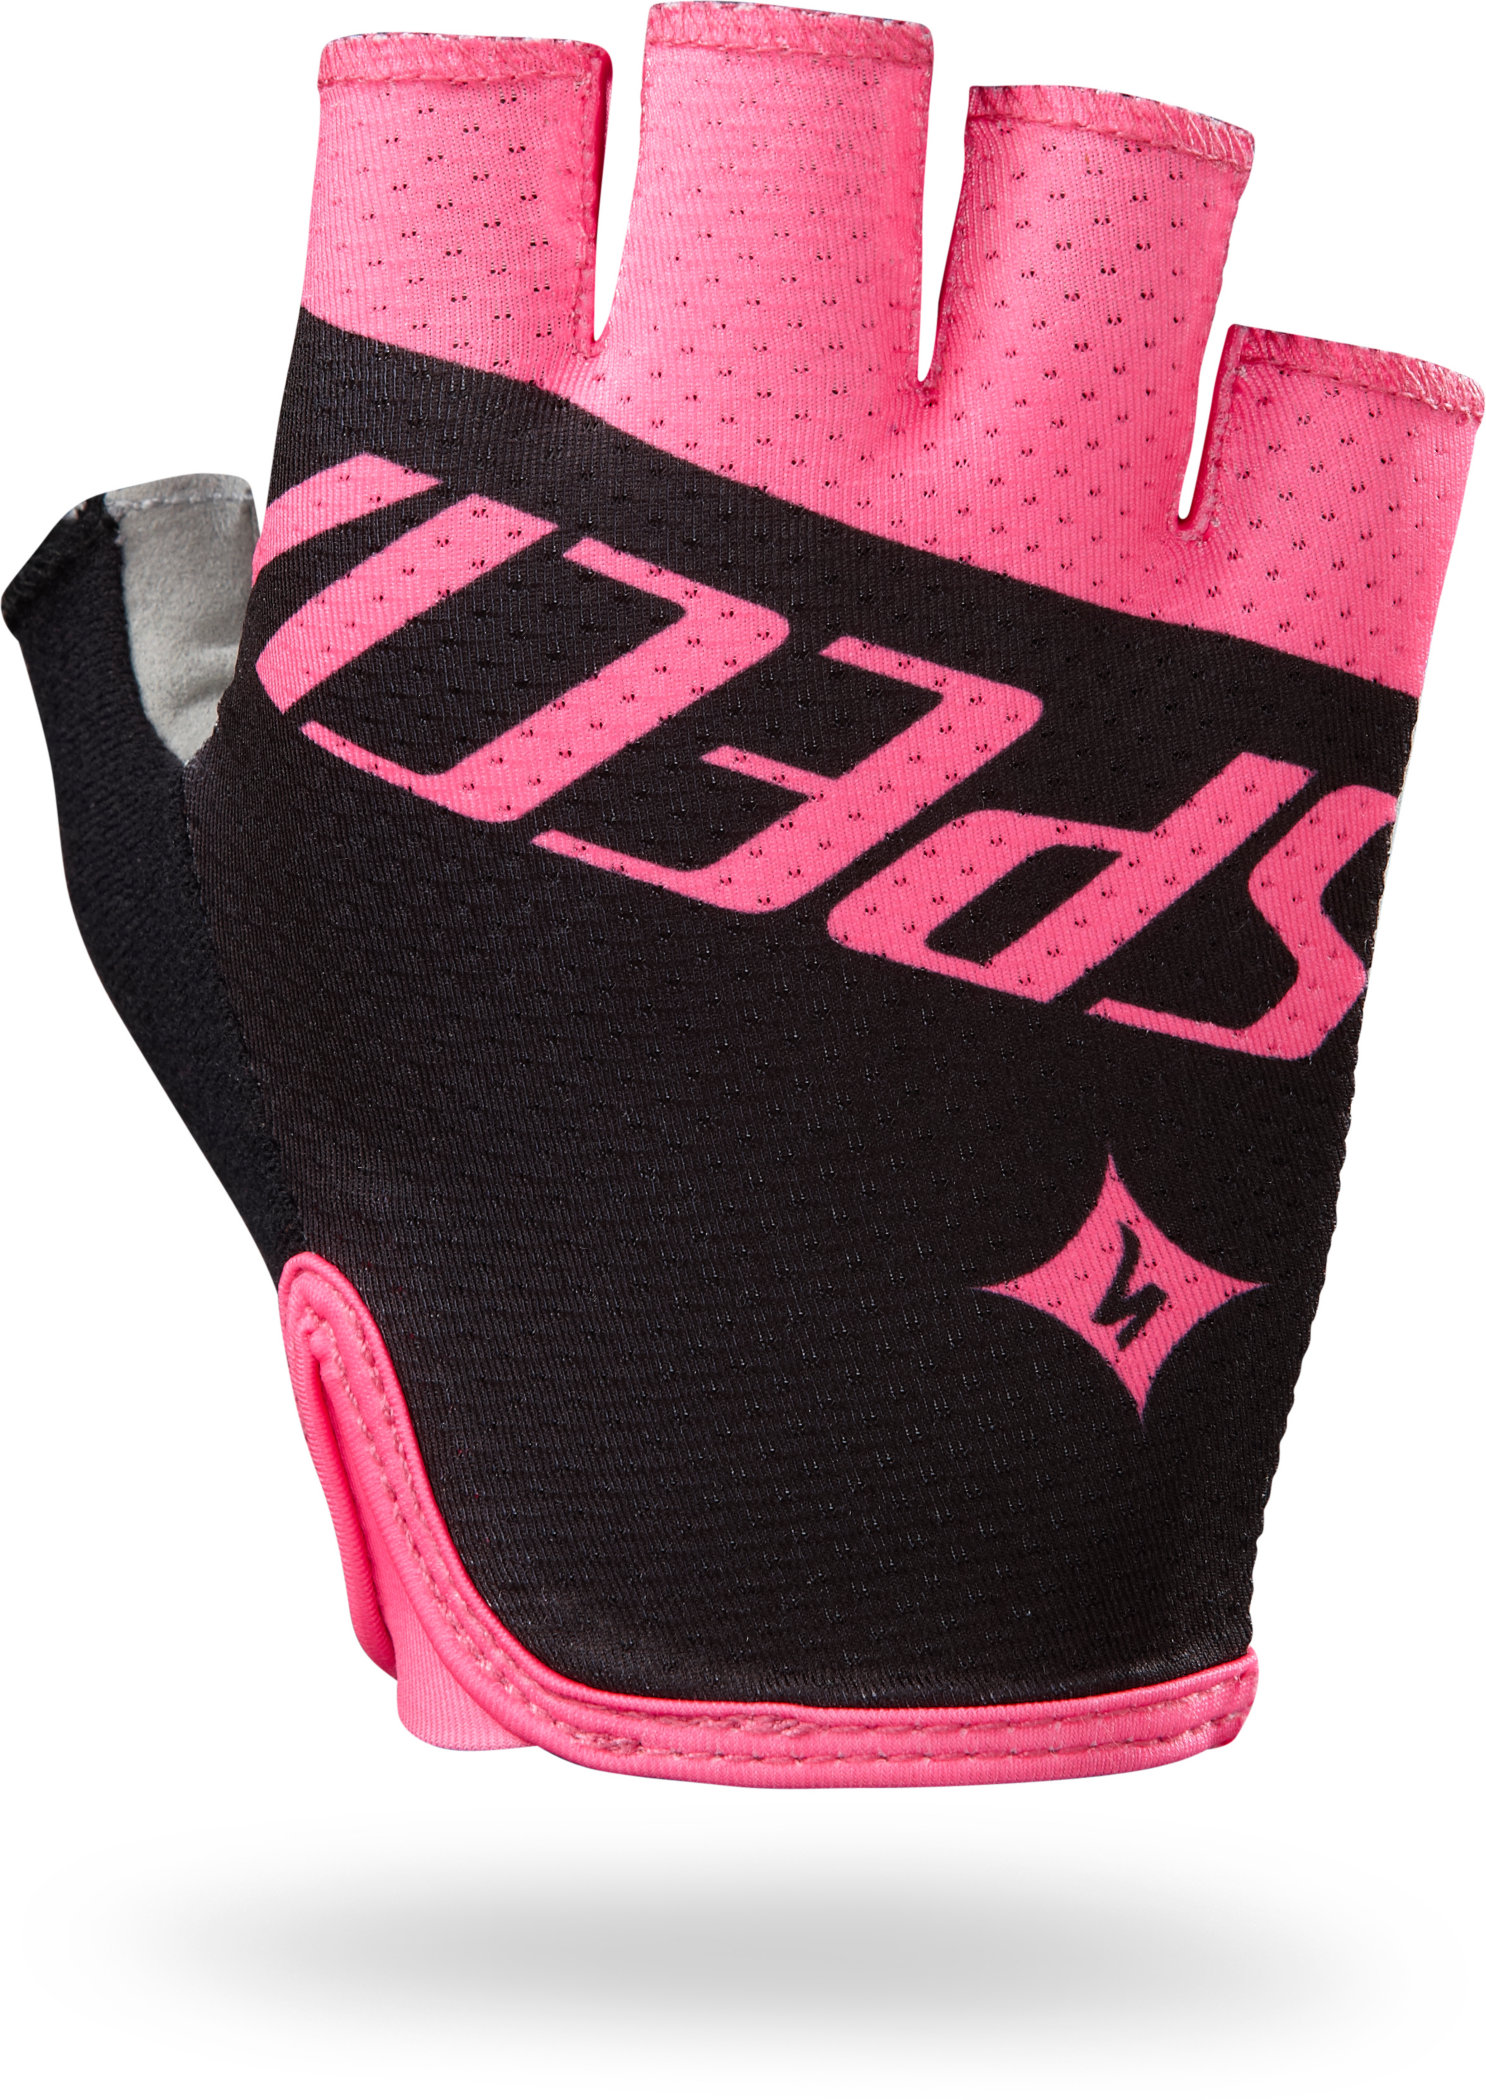 SPECIALIZED BG GRAIL GLOVE SF WMN NEON PNK TEAM L - Bikedreams & Dustbikes